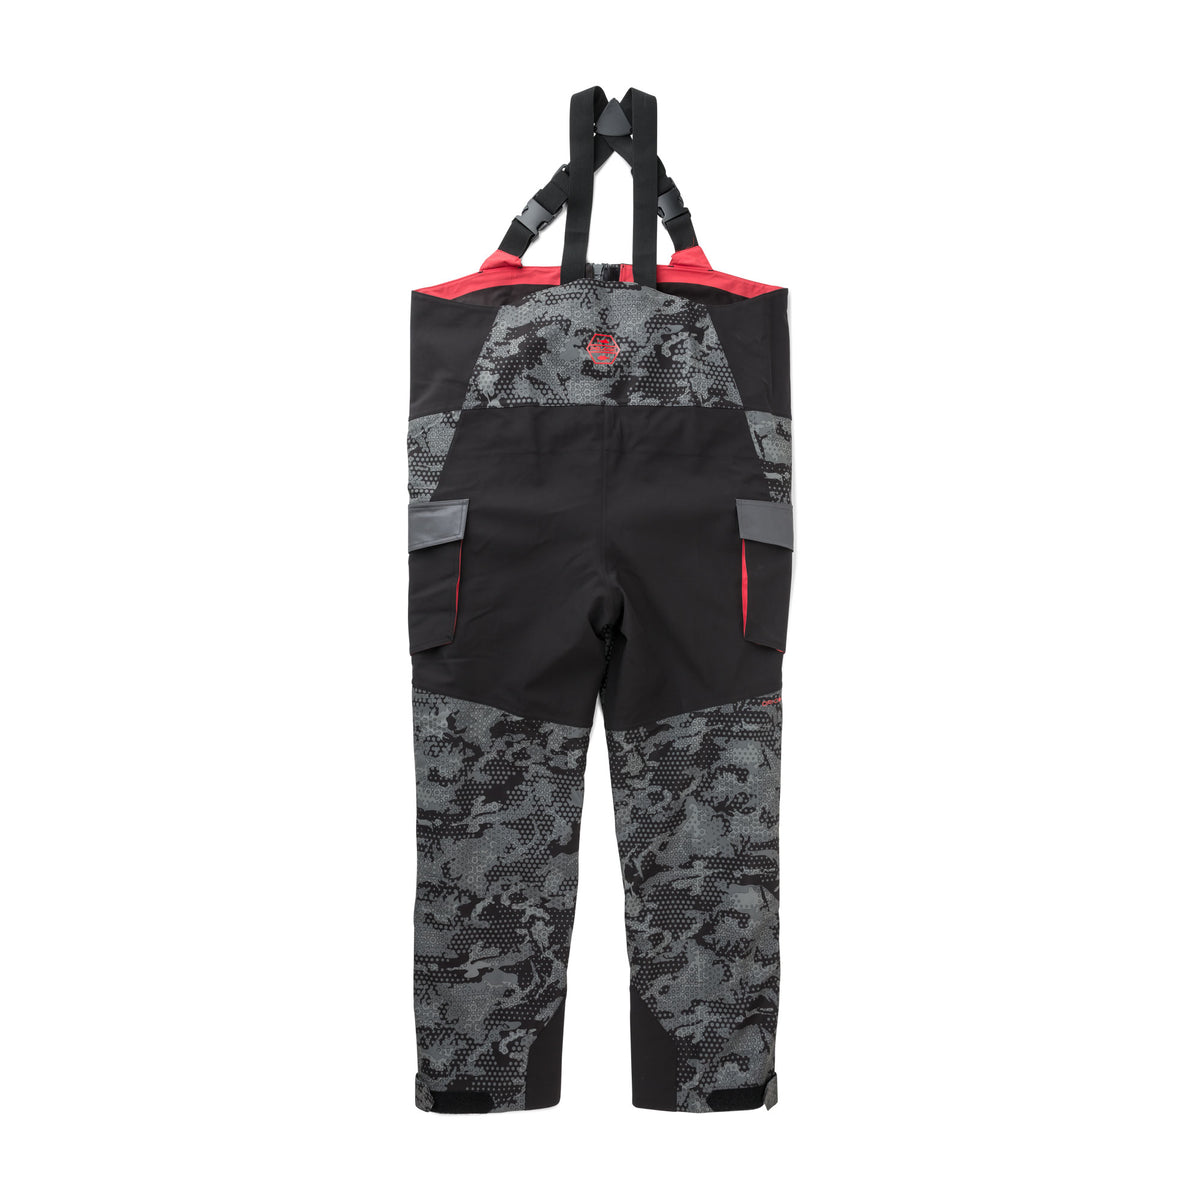 Tempest Pro Storm Fishing Bib Big Image - 3